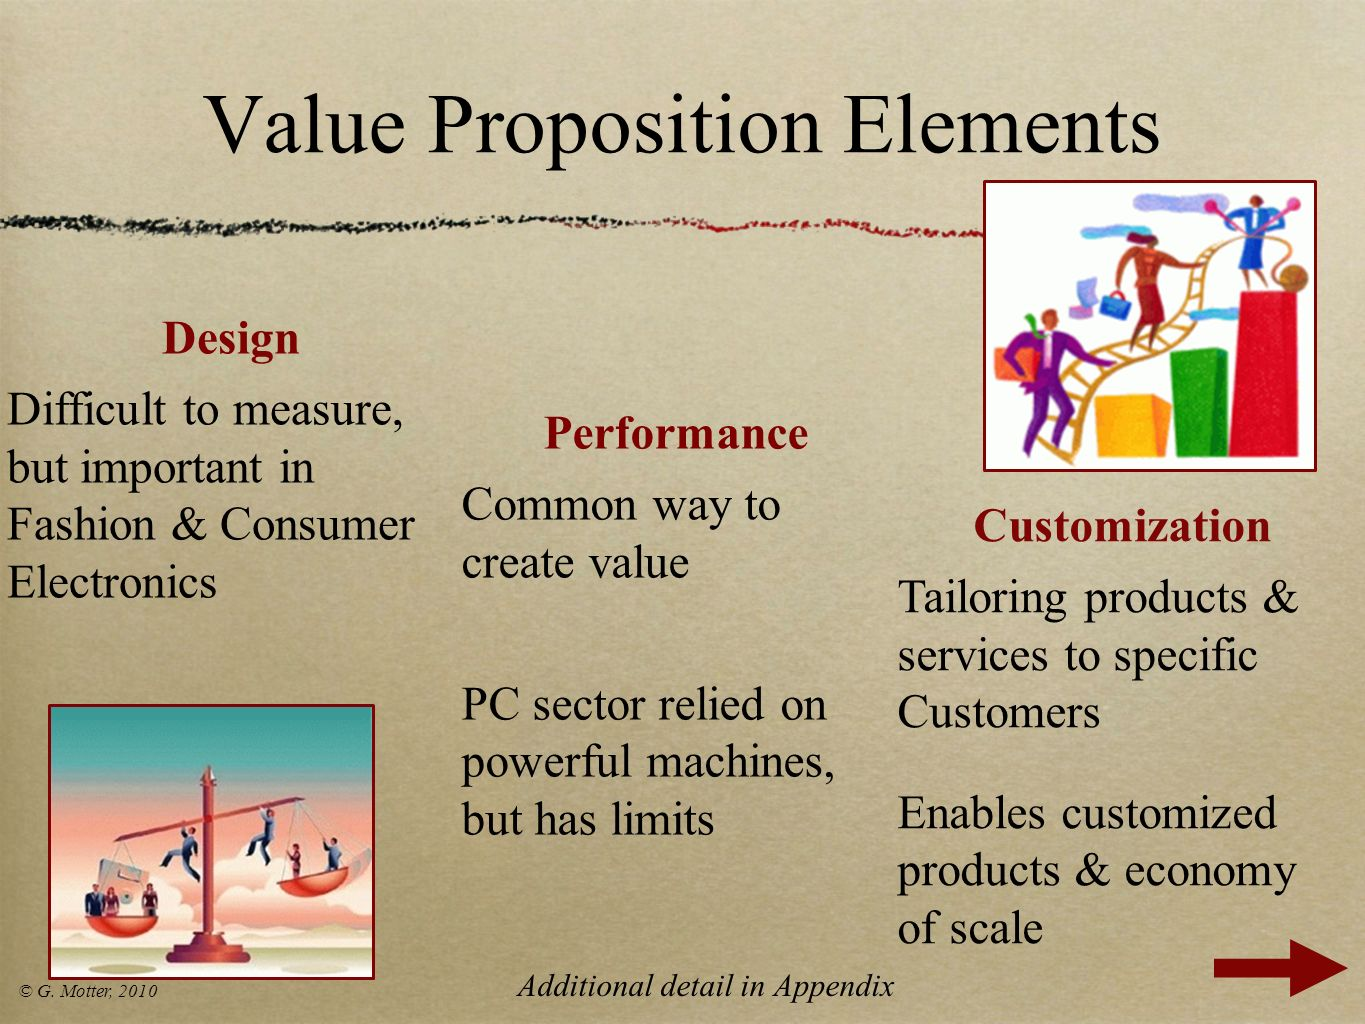 Value Proposition Elements